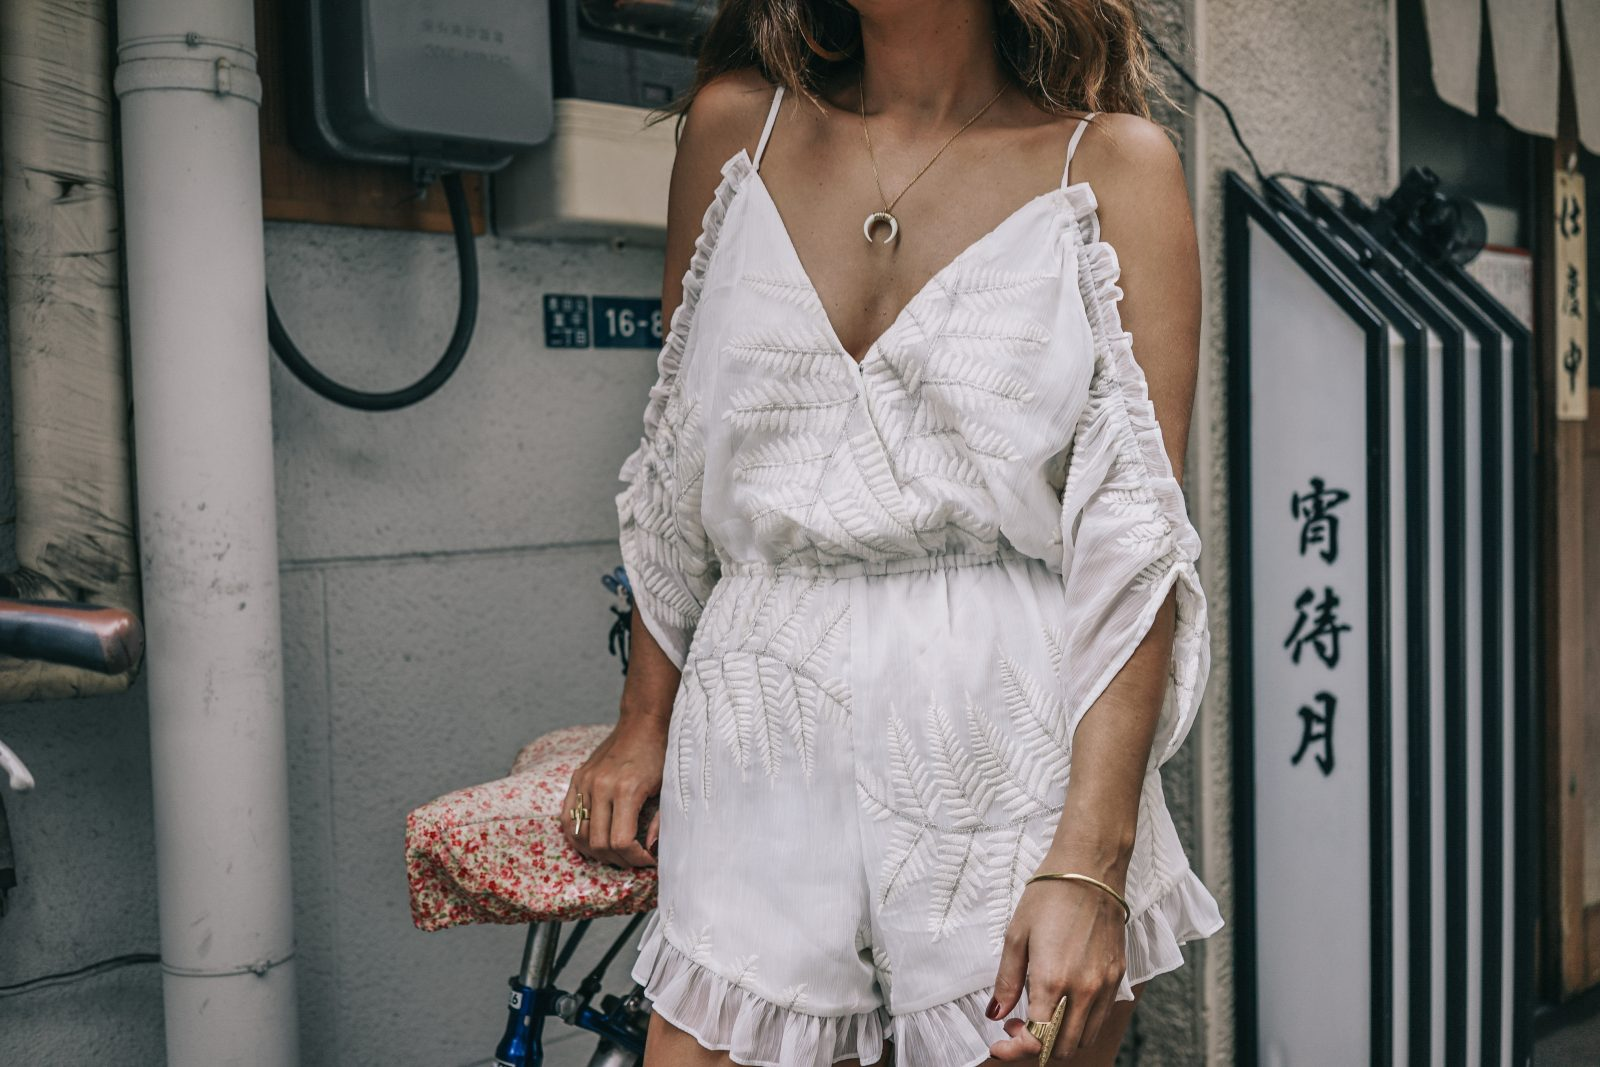 tokyo_travel_guide-outfit-collage_vintage-street_style-lovers_and_friends_jumpsuit-white_outfit-espadrilles-backpack-levis_denim_jacket-akihabara-76